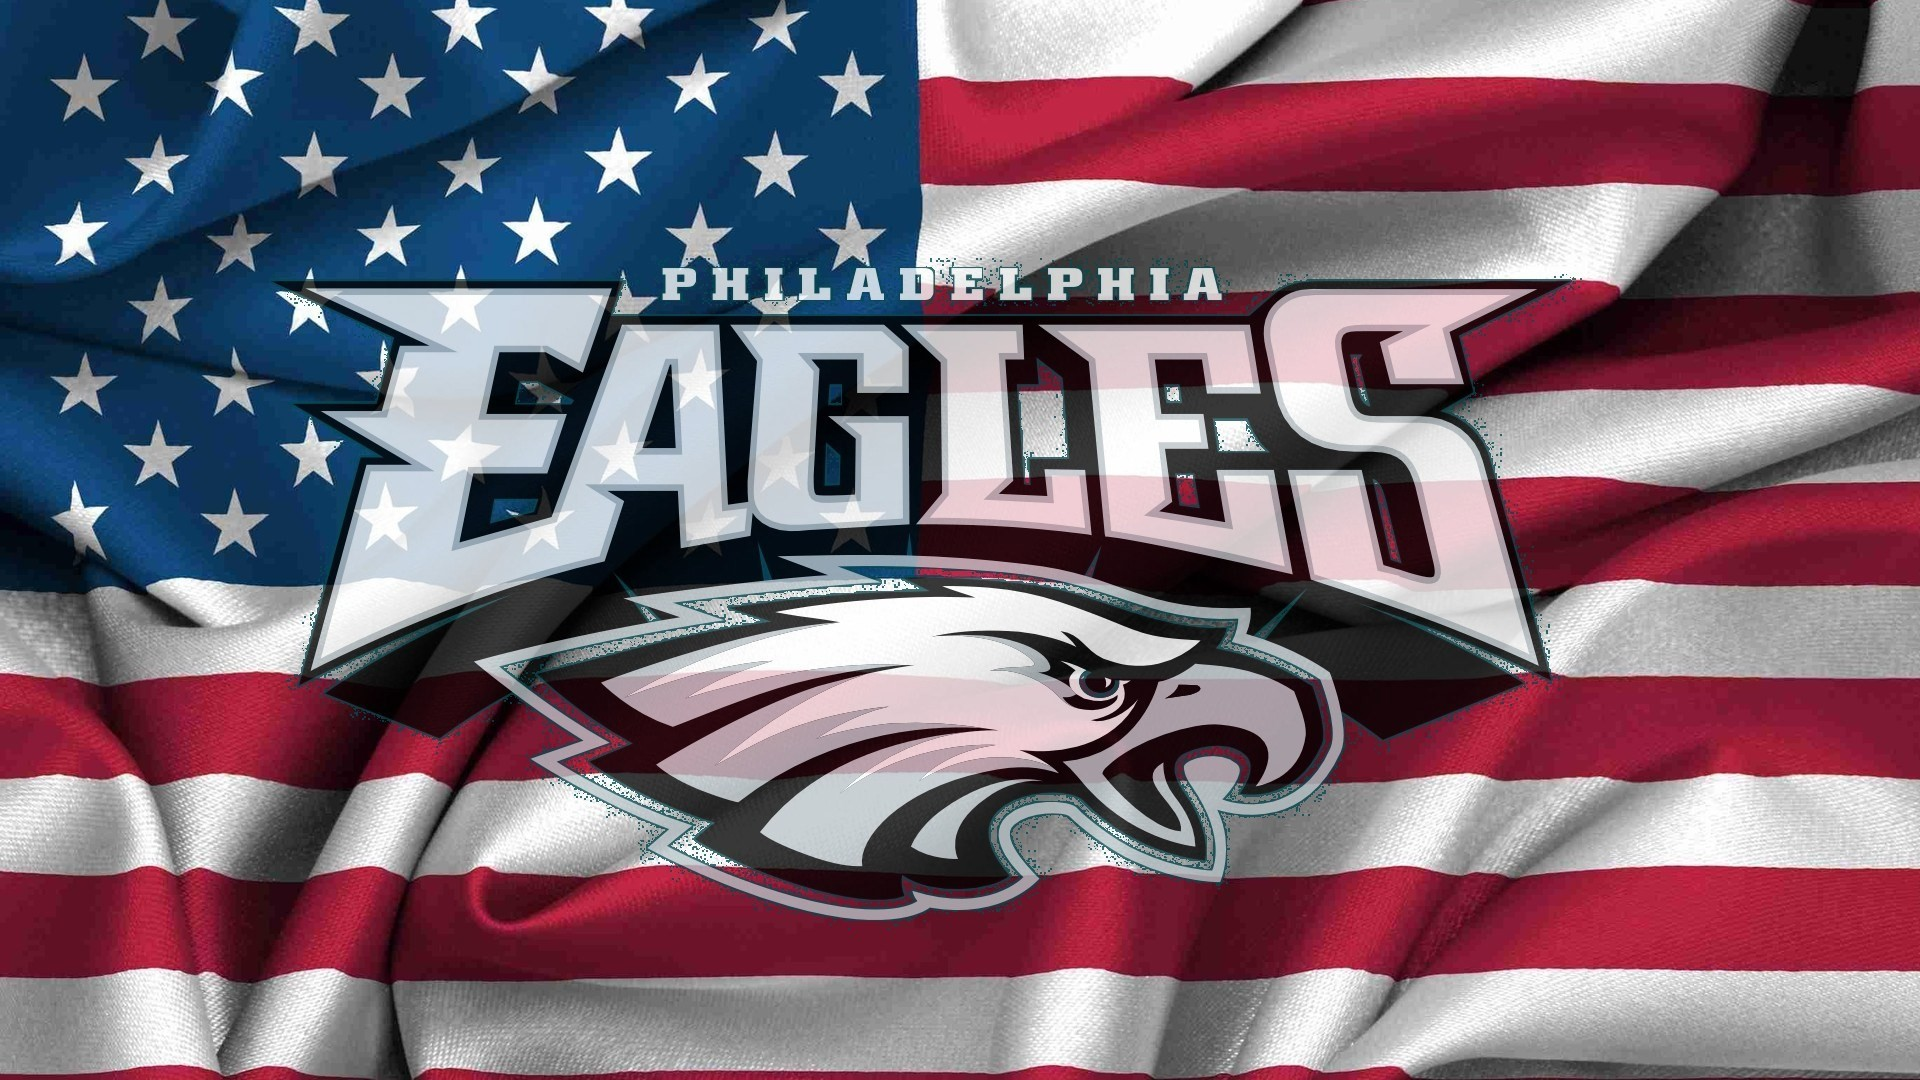 1920x1080 0 eagles logo wallpap eagles wallpaper | live wallpaper HD Desktop Wallpaper